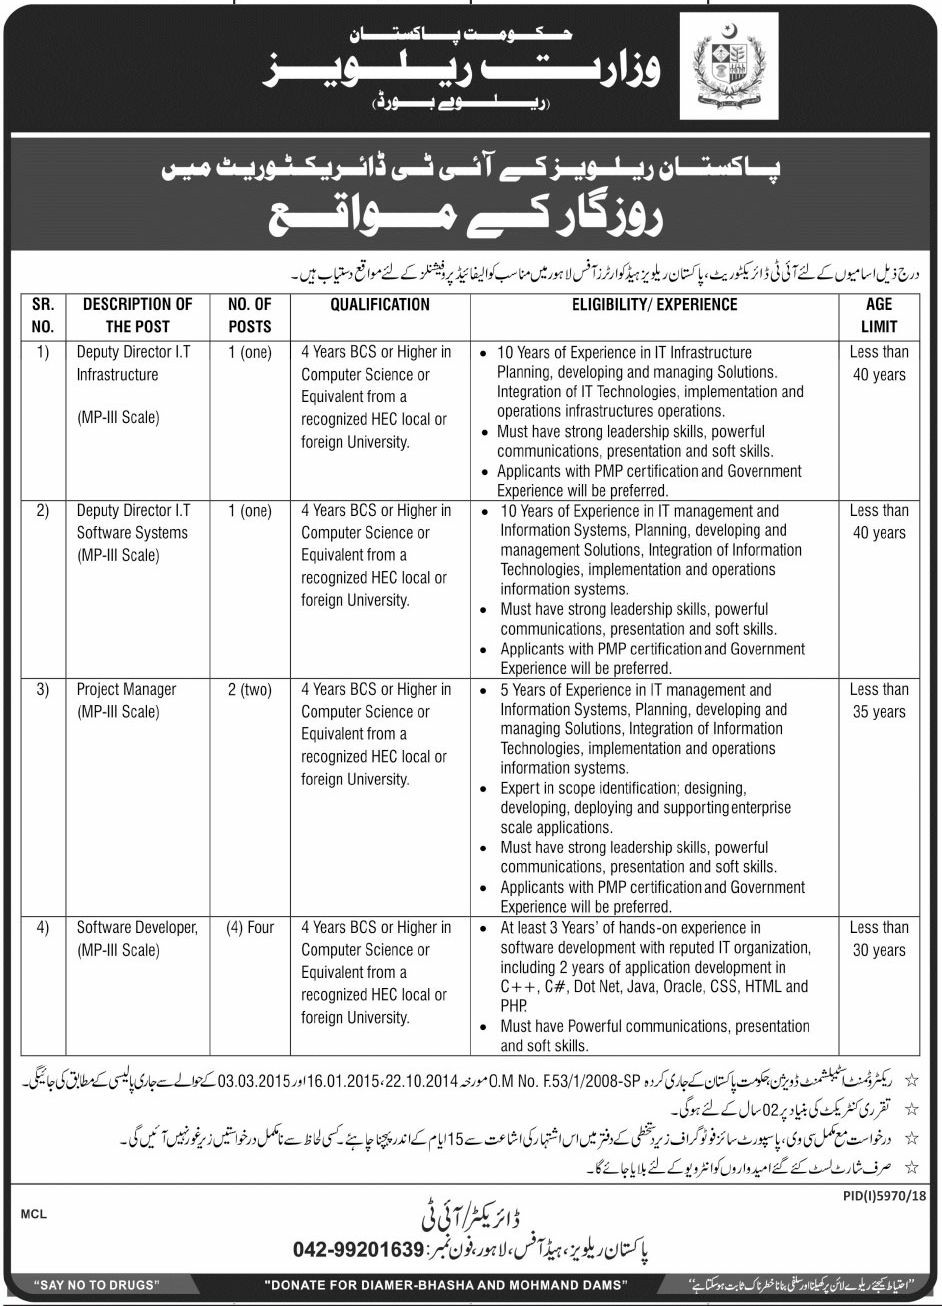 Government of Pakistan - Ministry of Railways Jobs